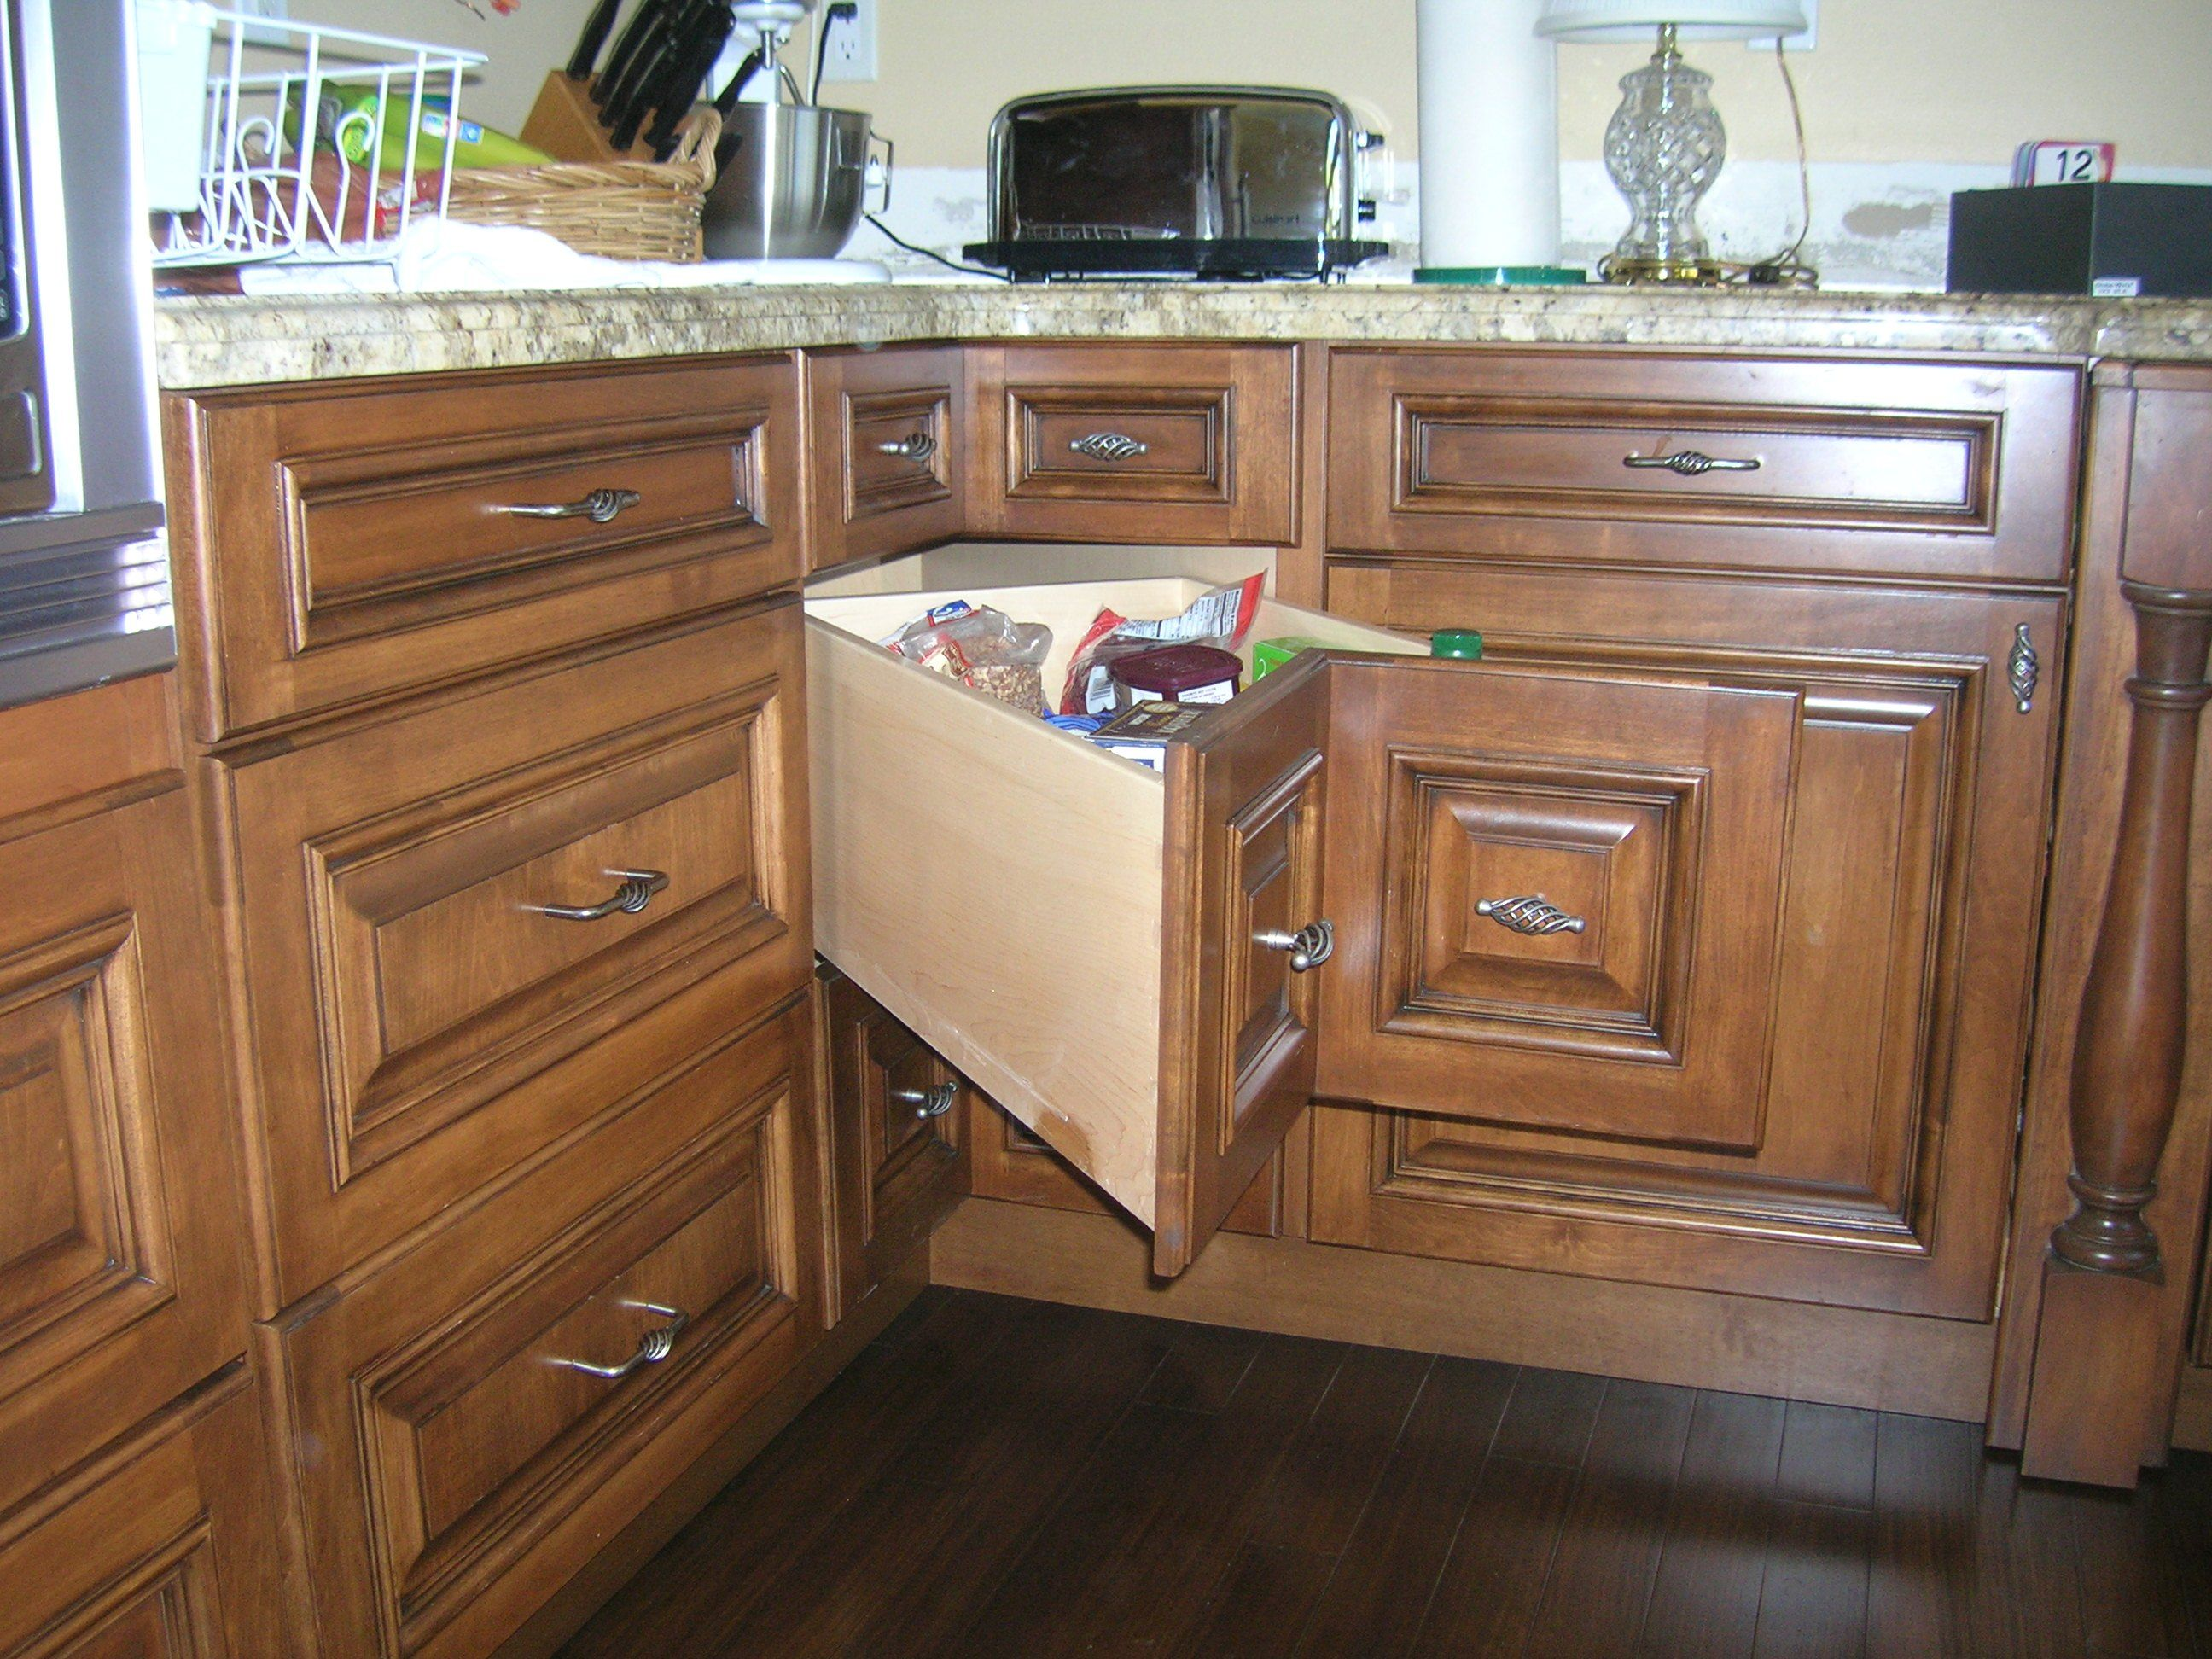 Best Corner Cabinet Storage Solution Kitchen Remodel Corner 400 x 300